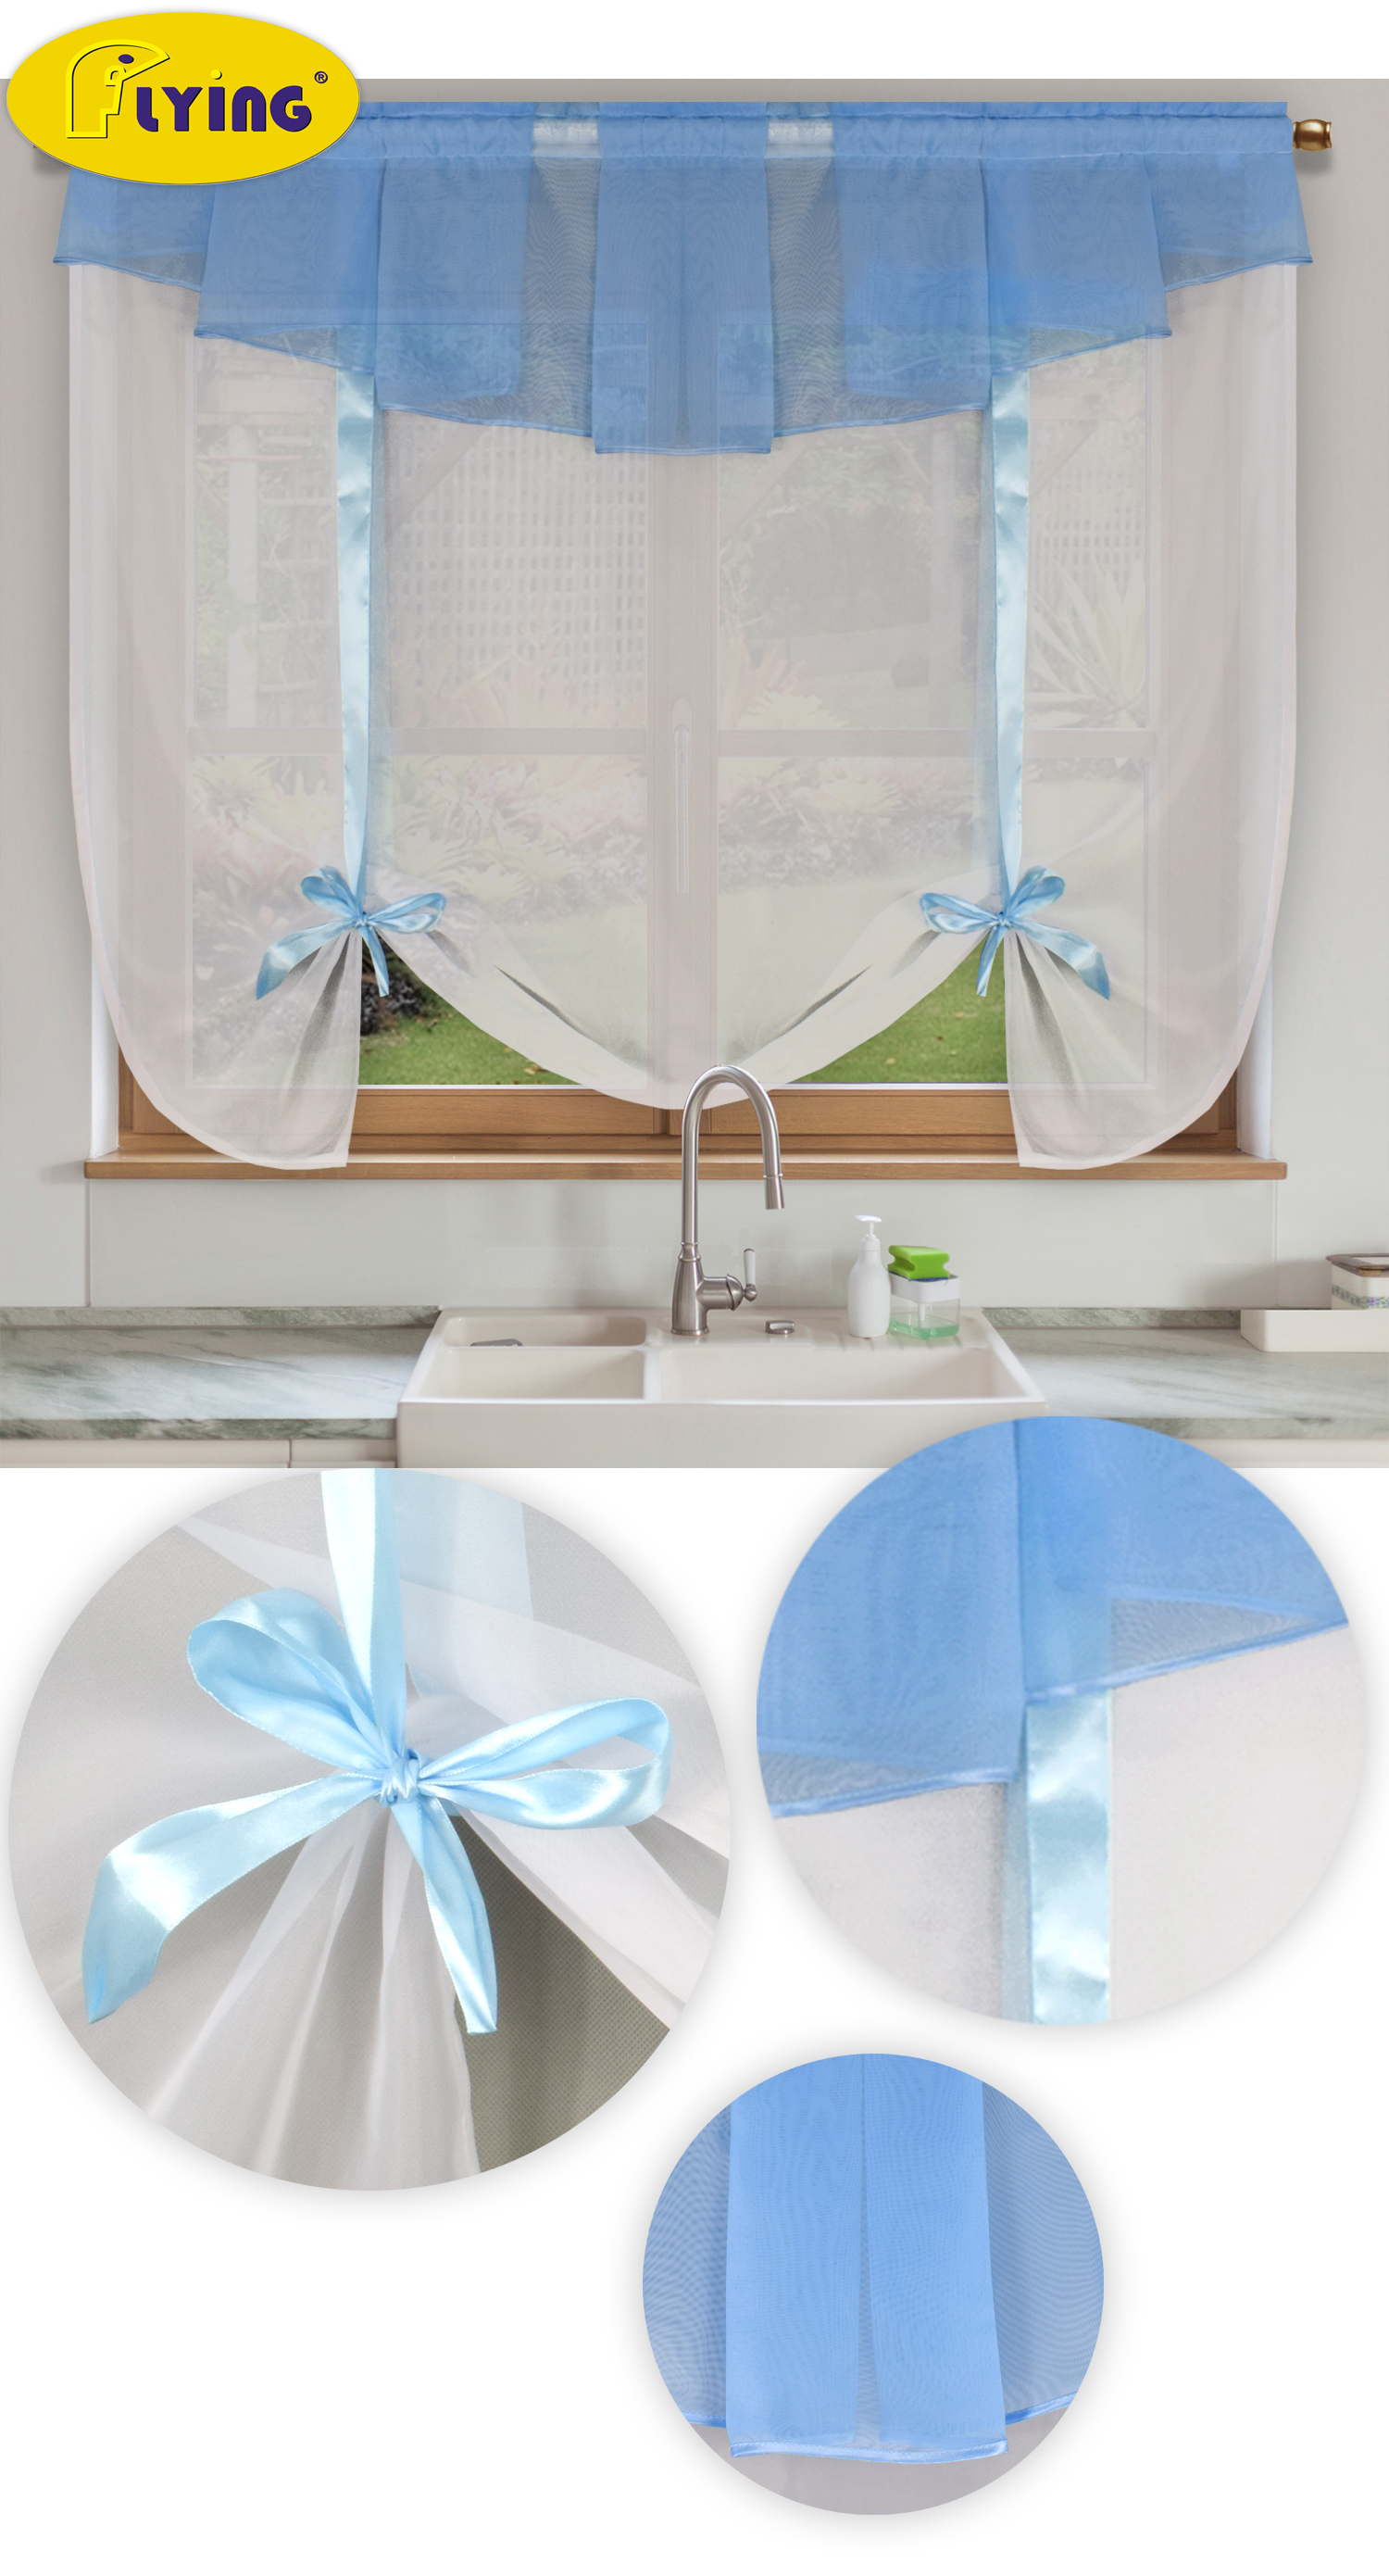 Flying Tulle Balcony Drape Kitchen Window Curtain Sheer Wave Blinds Yarn Sheer Voile Curtains For Kitchen Solid Color